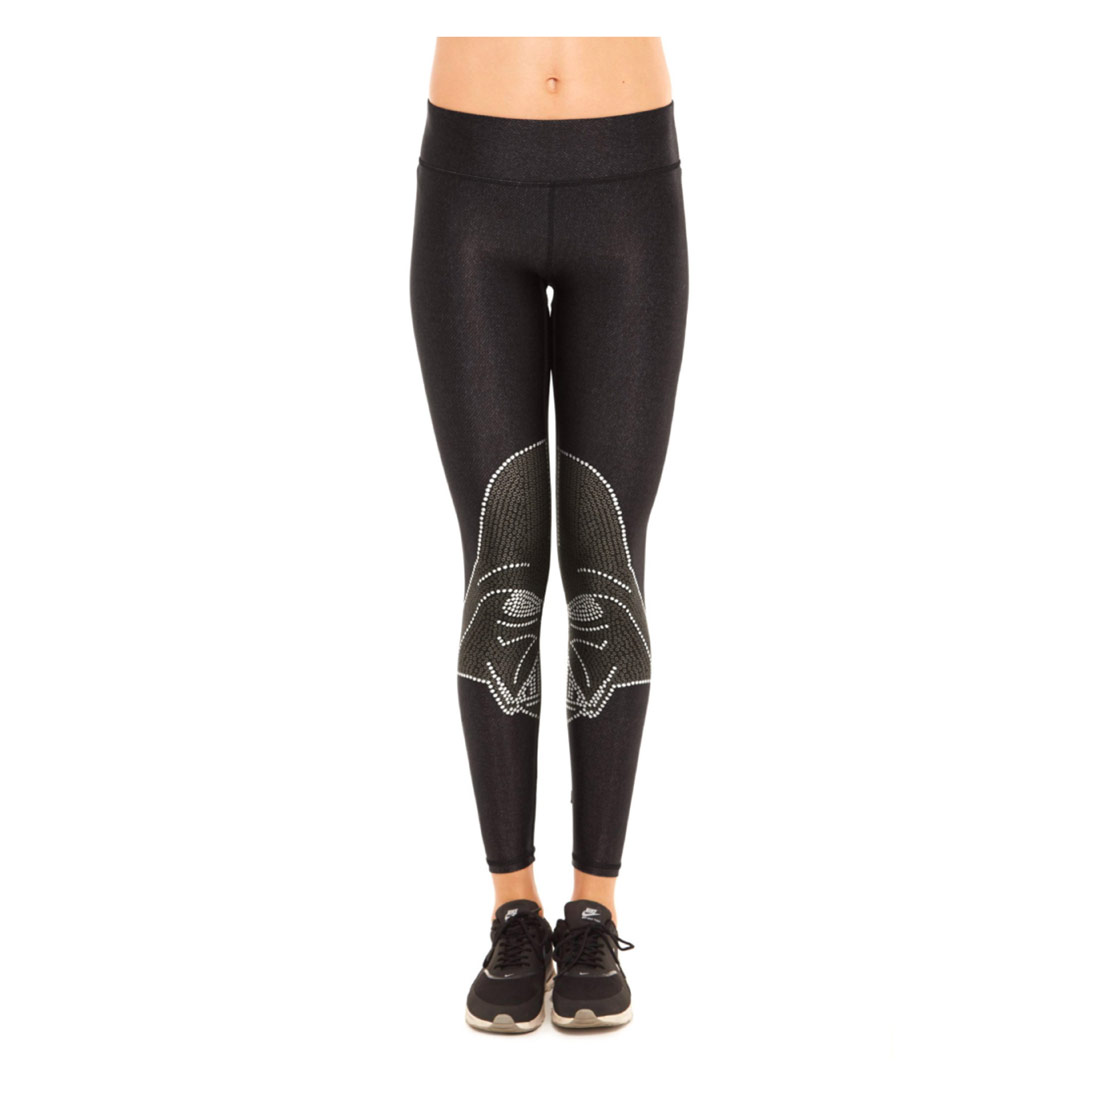 cf6a060e1bf51 Or gift it to family/friends who need a little extra Force in their winter  fashion. Terez's Star Wars Crystal Vader Tall Band Leggings